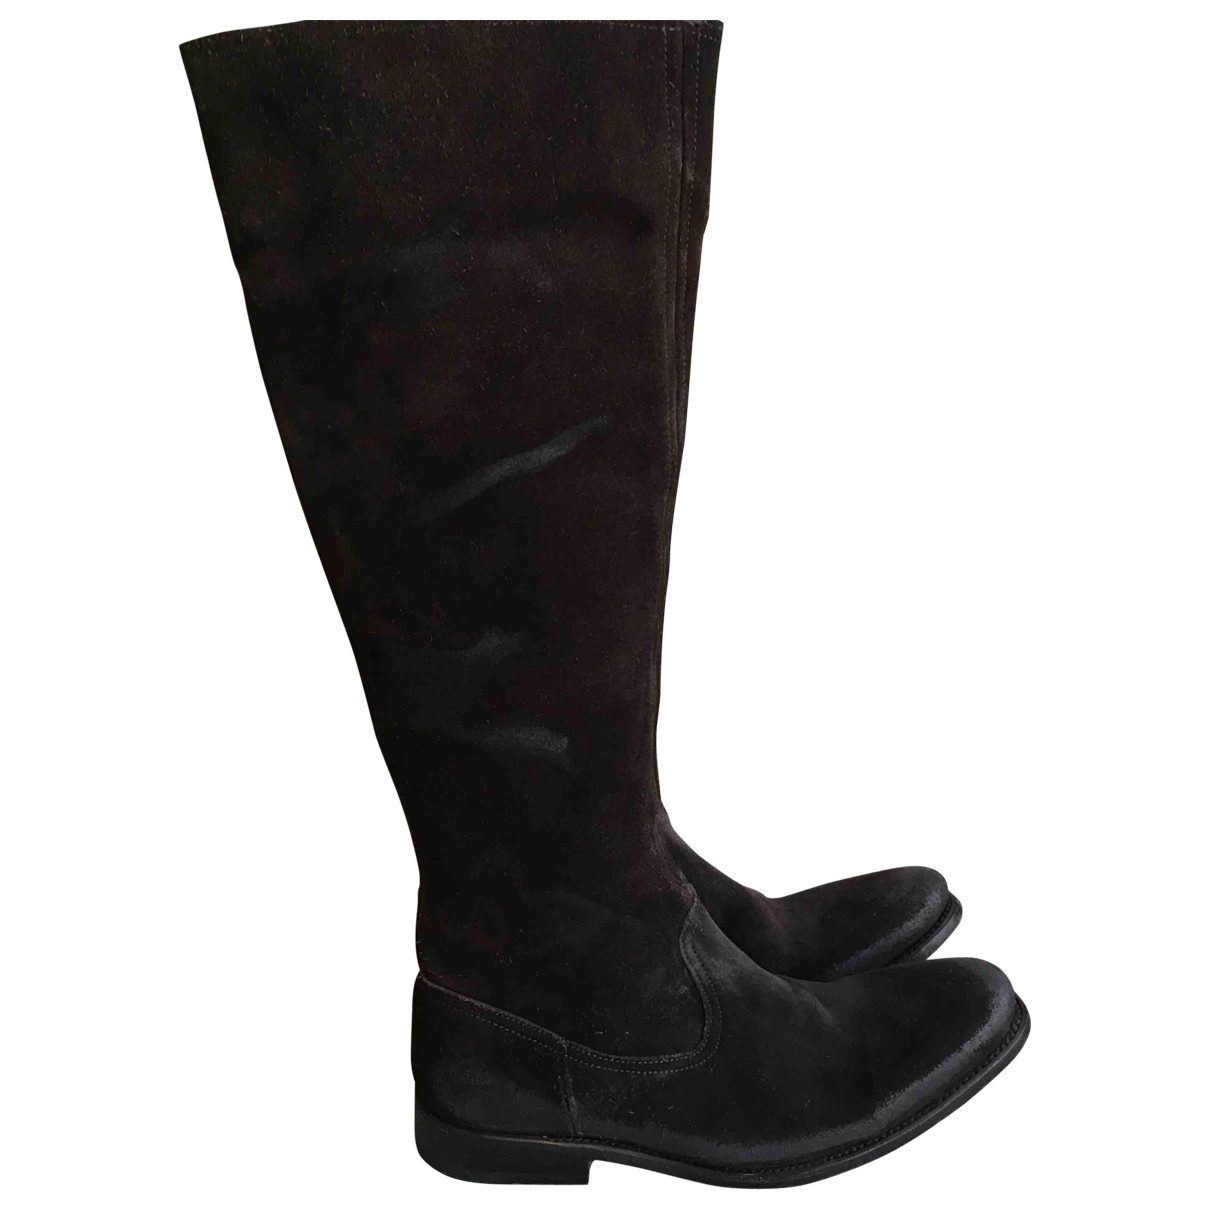 N.d.c. Made By Hand \N Brown Suede Boots for Women 38 EU